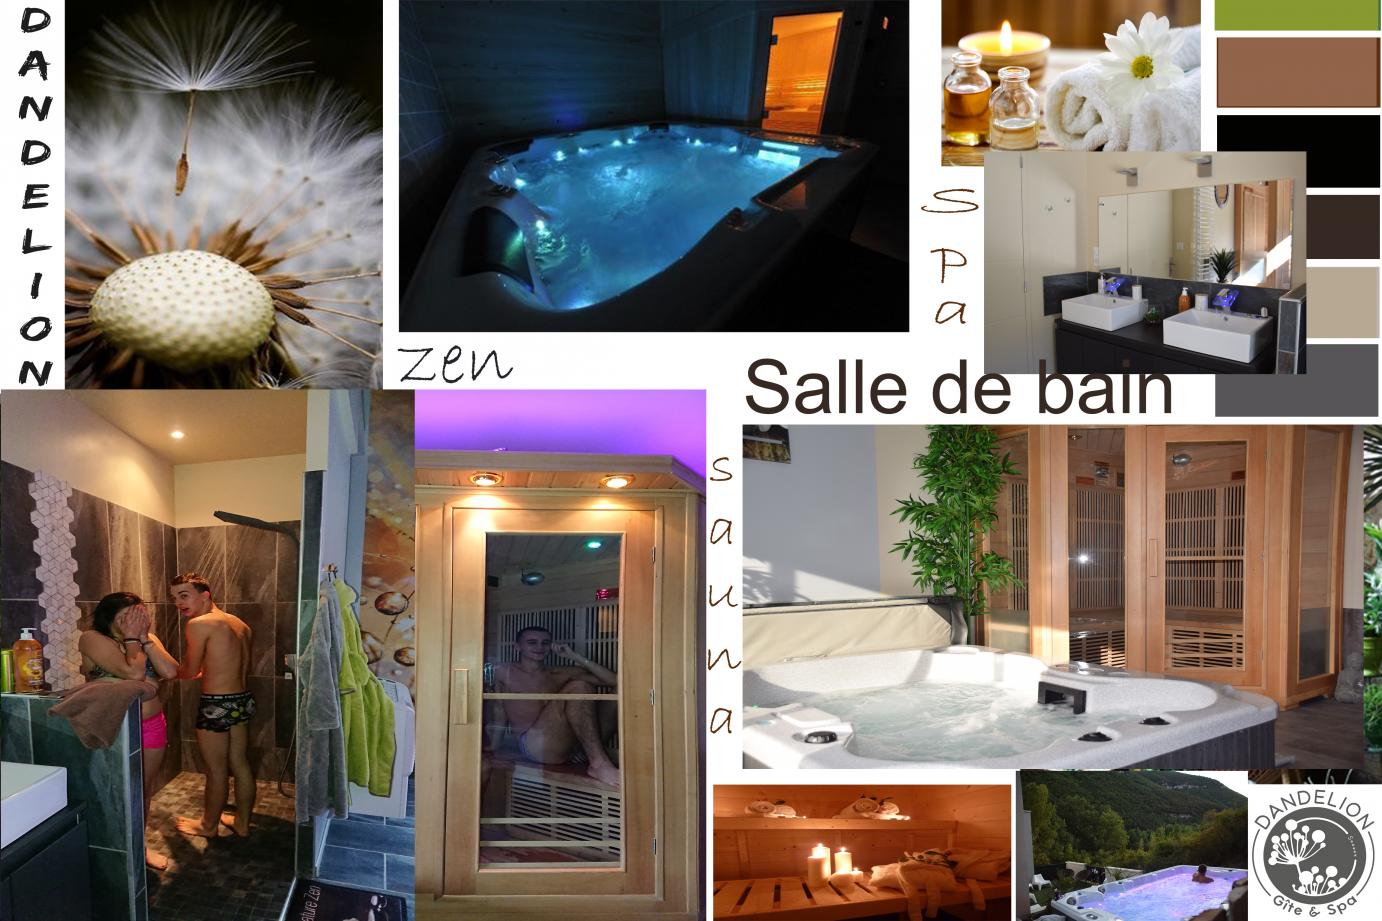 Salle De Bain Spa Sauna ~ spa design bathroom with jacuzzi sauna ecolodge room with jacuzzi